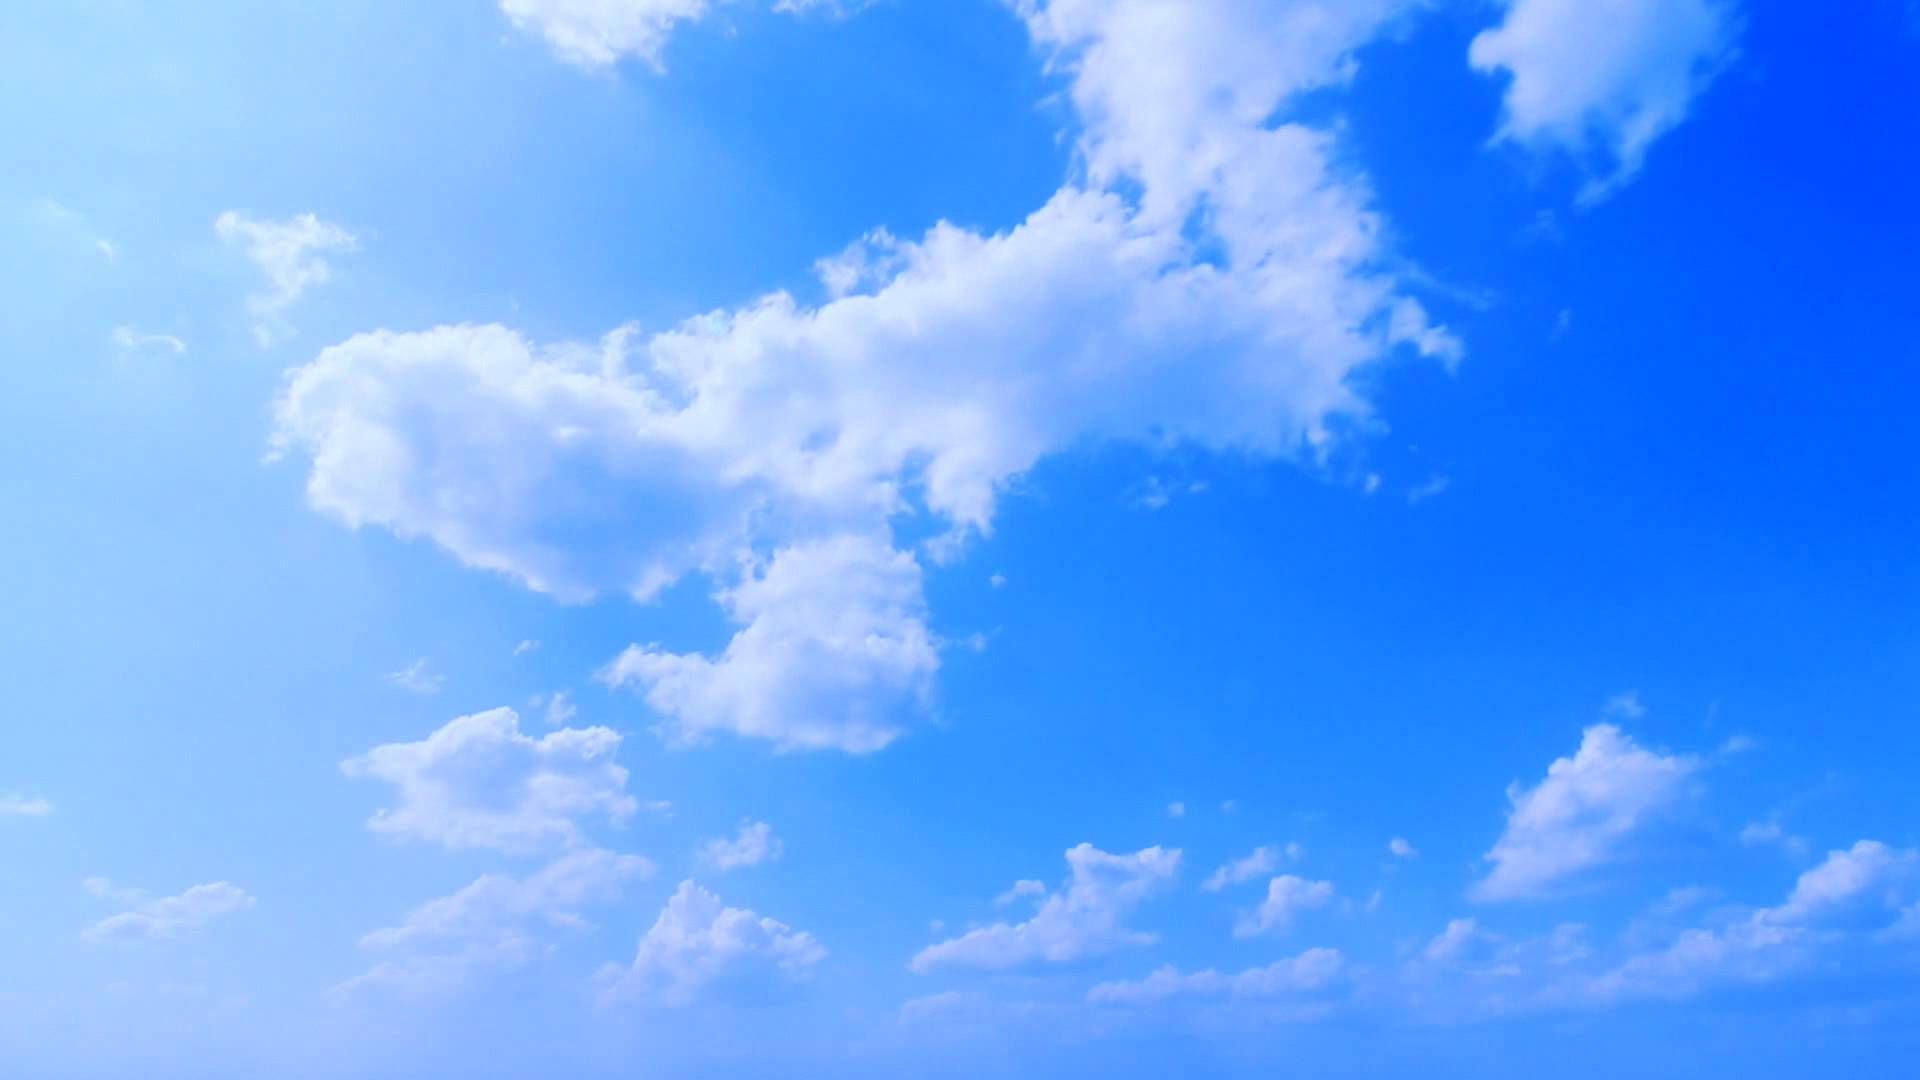 Deep Blue Sky Clouds Timelapse Free Footage Full Hd 1080p